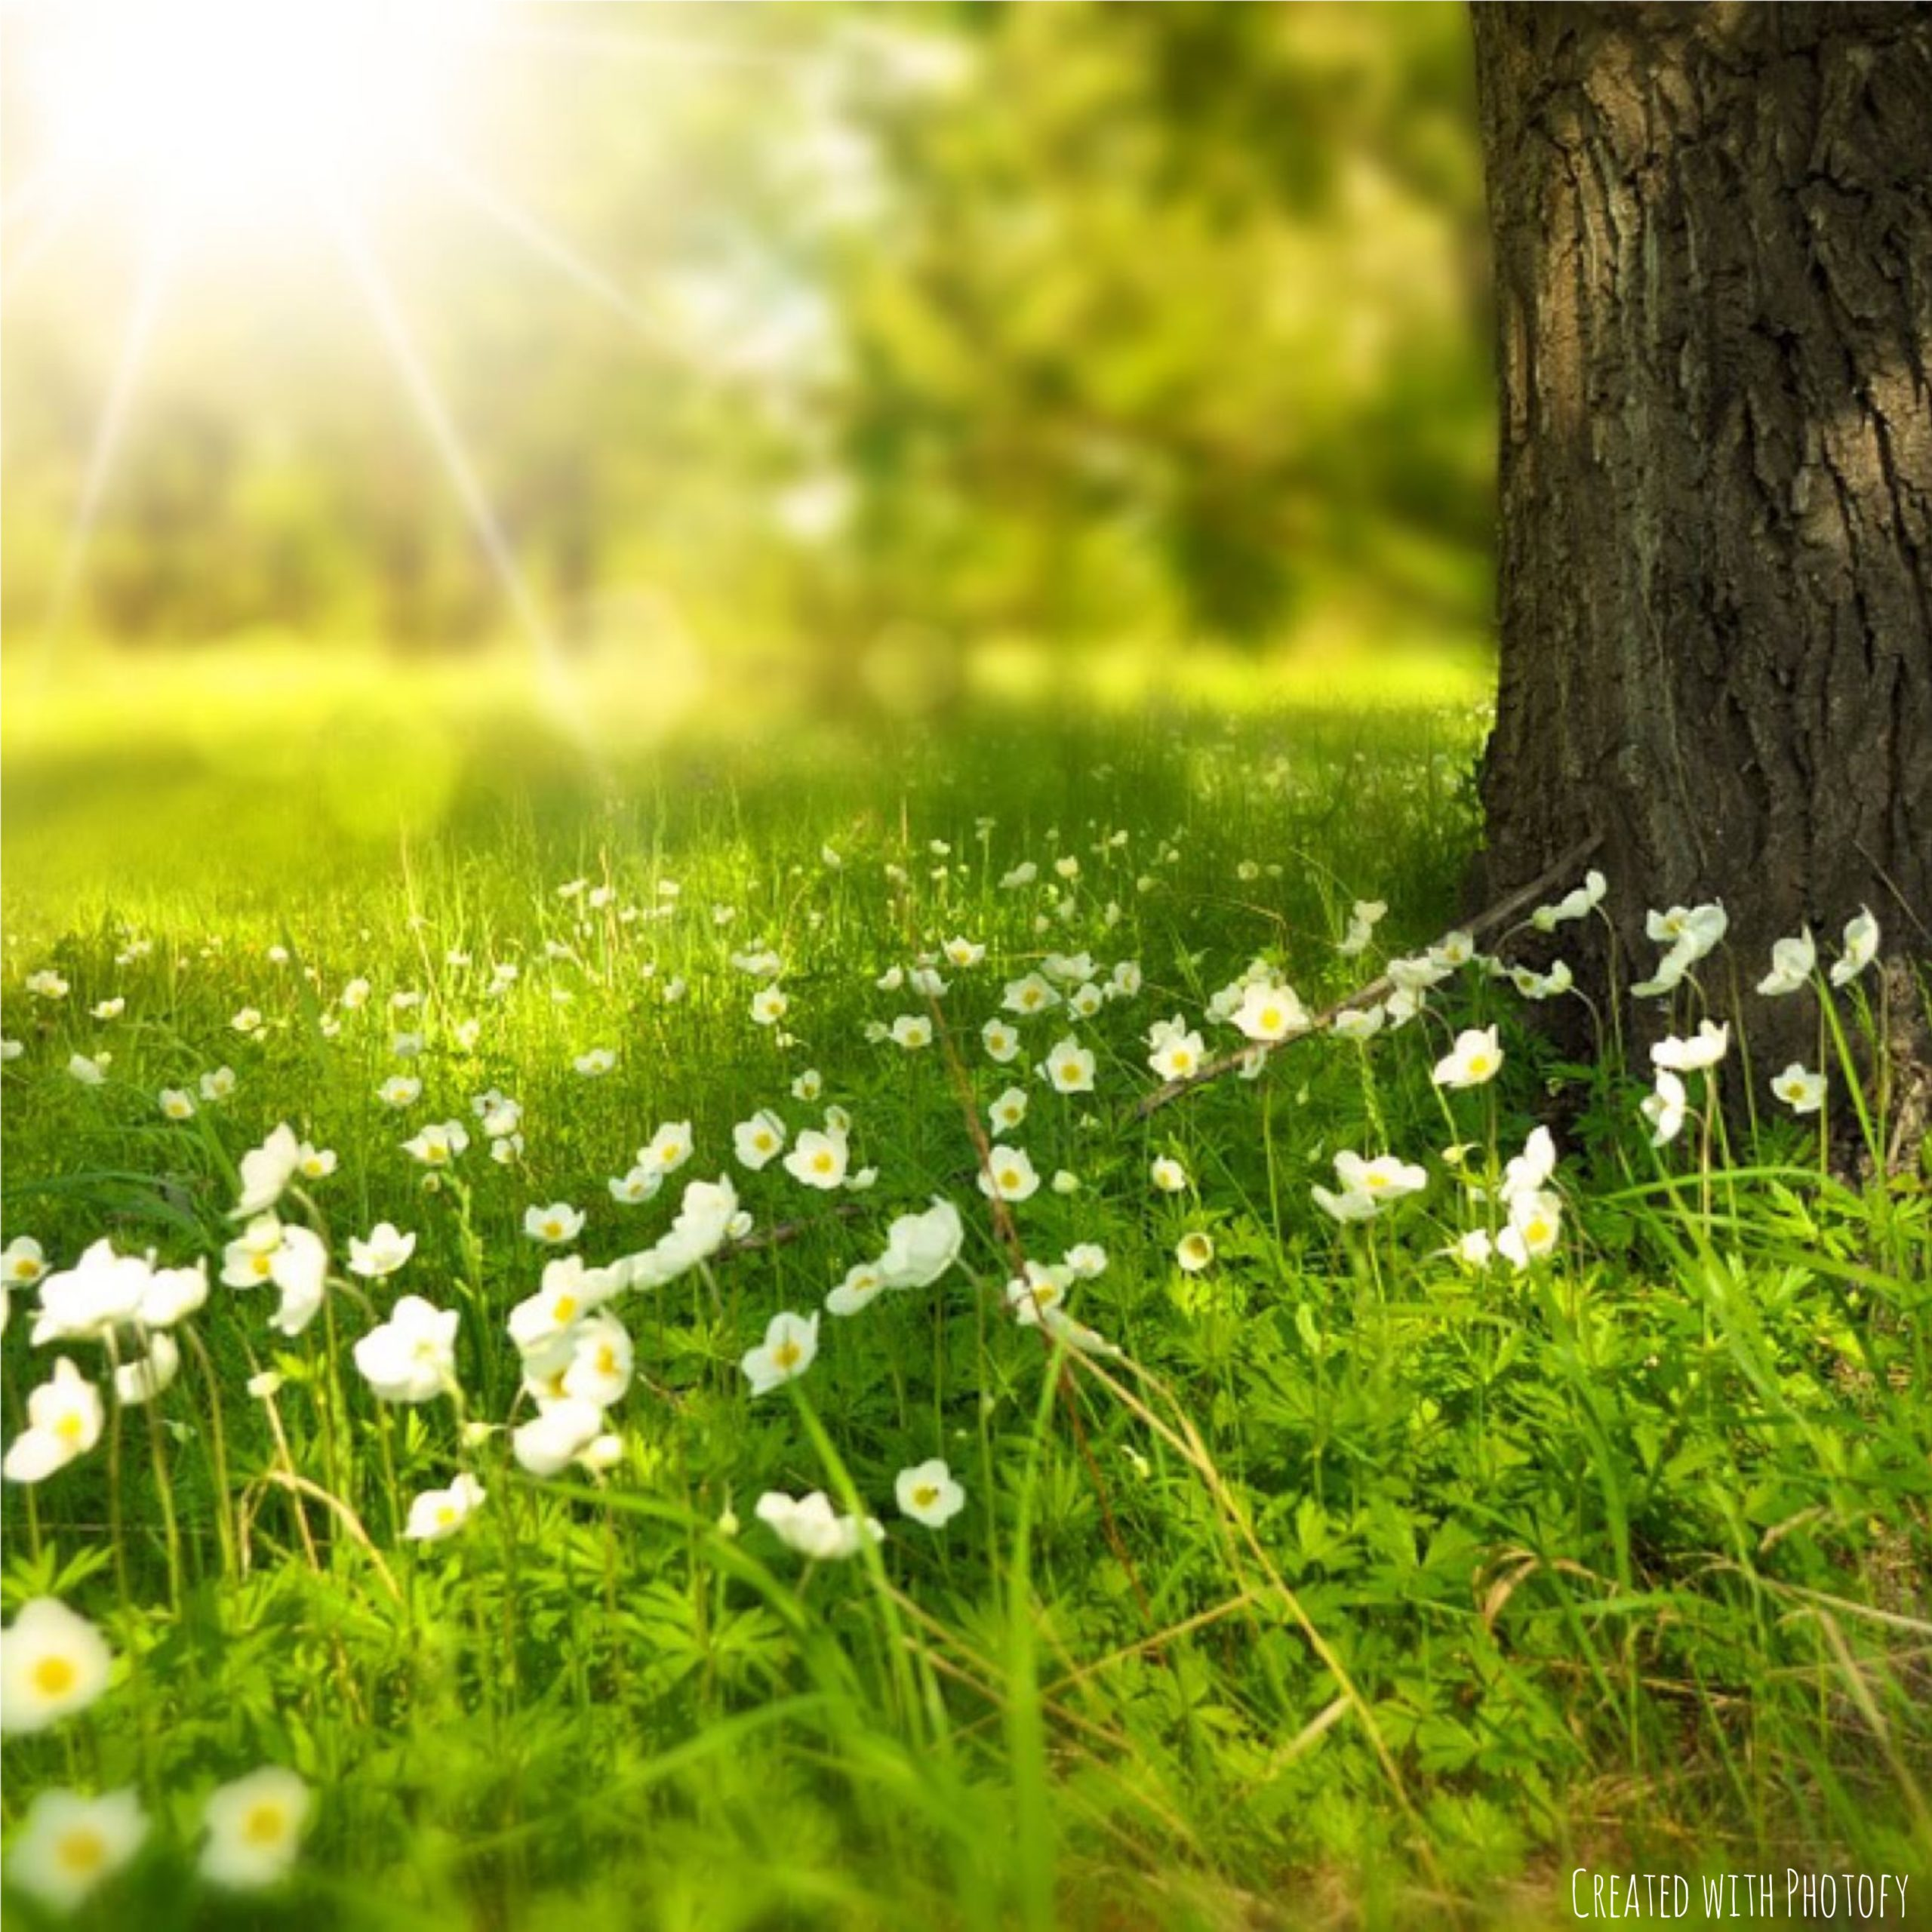 Photo of tree trunk with spring flowers growing in the grass and the sun filtering through the trees in the background.